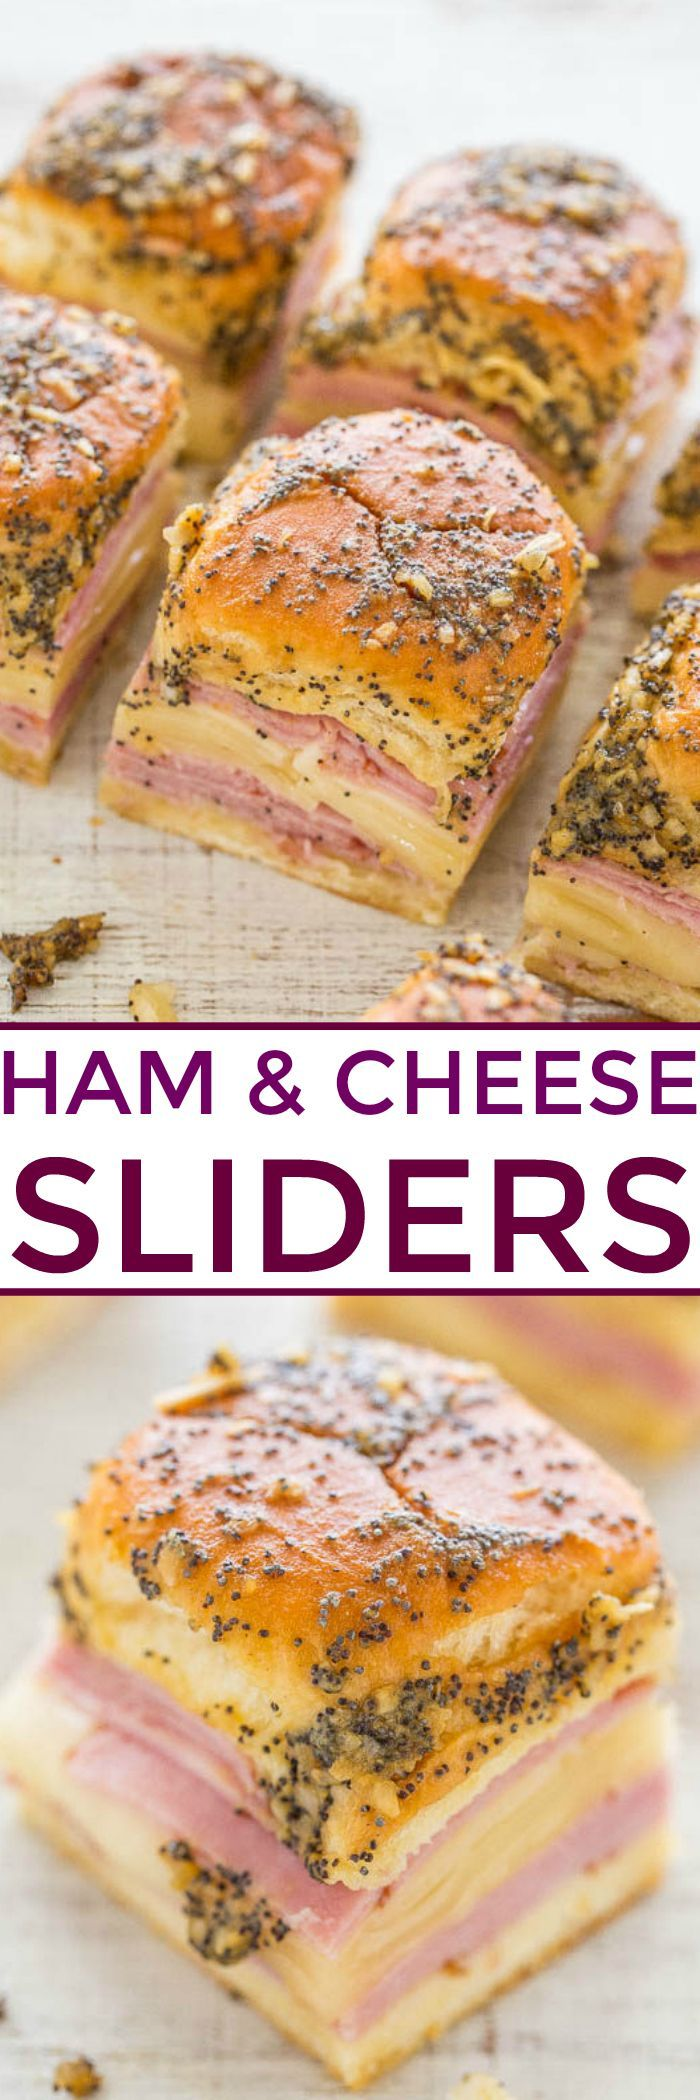 Ham and Cheese Sliders  – Drinks, Food & Snacks